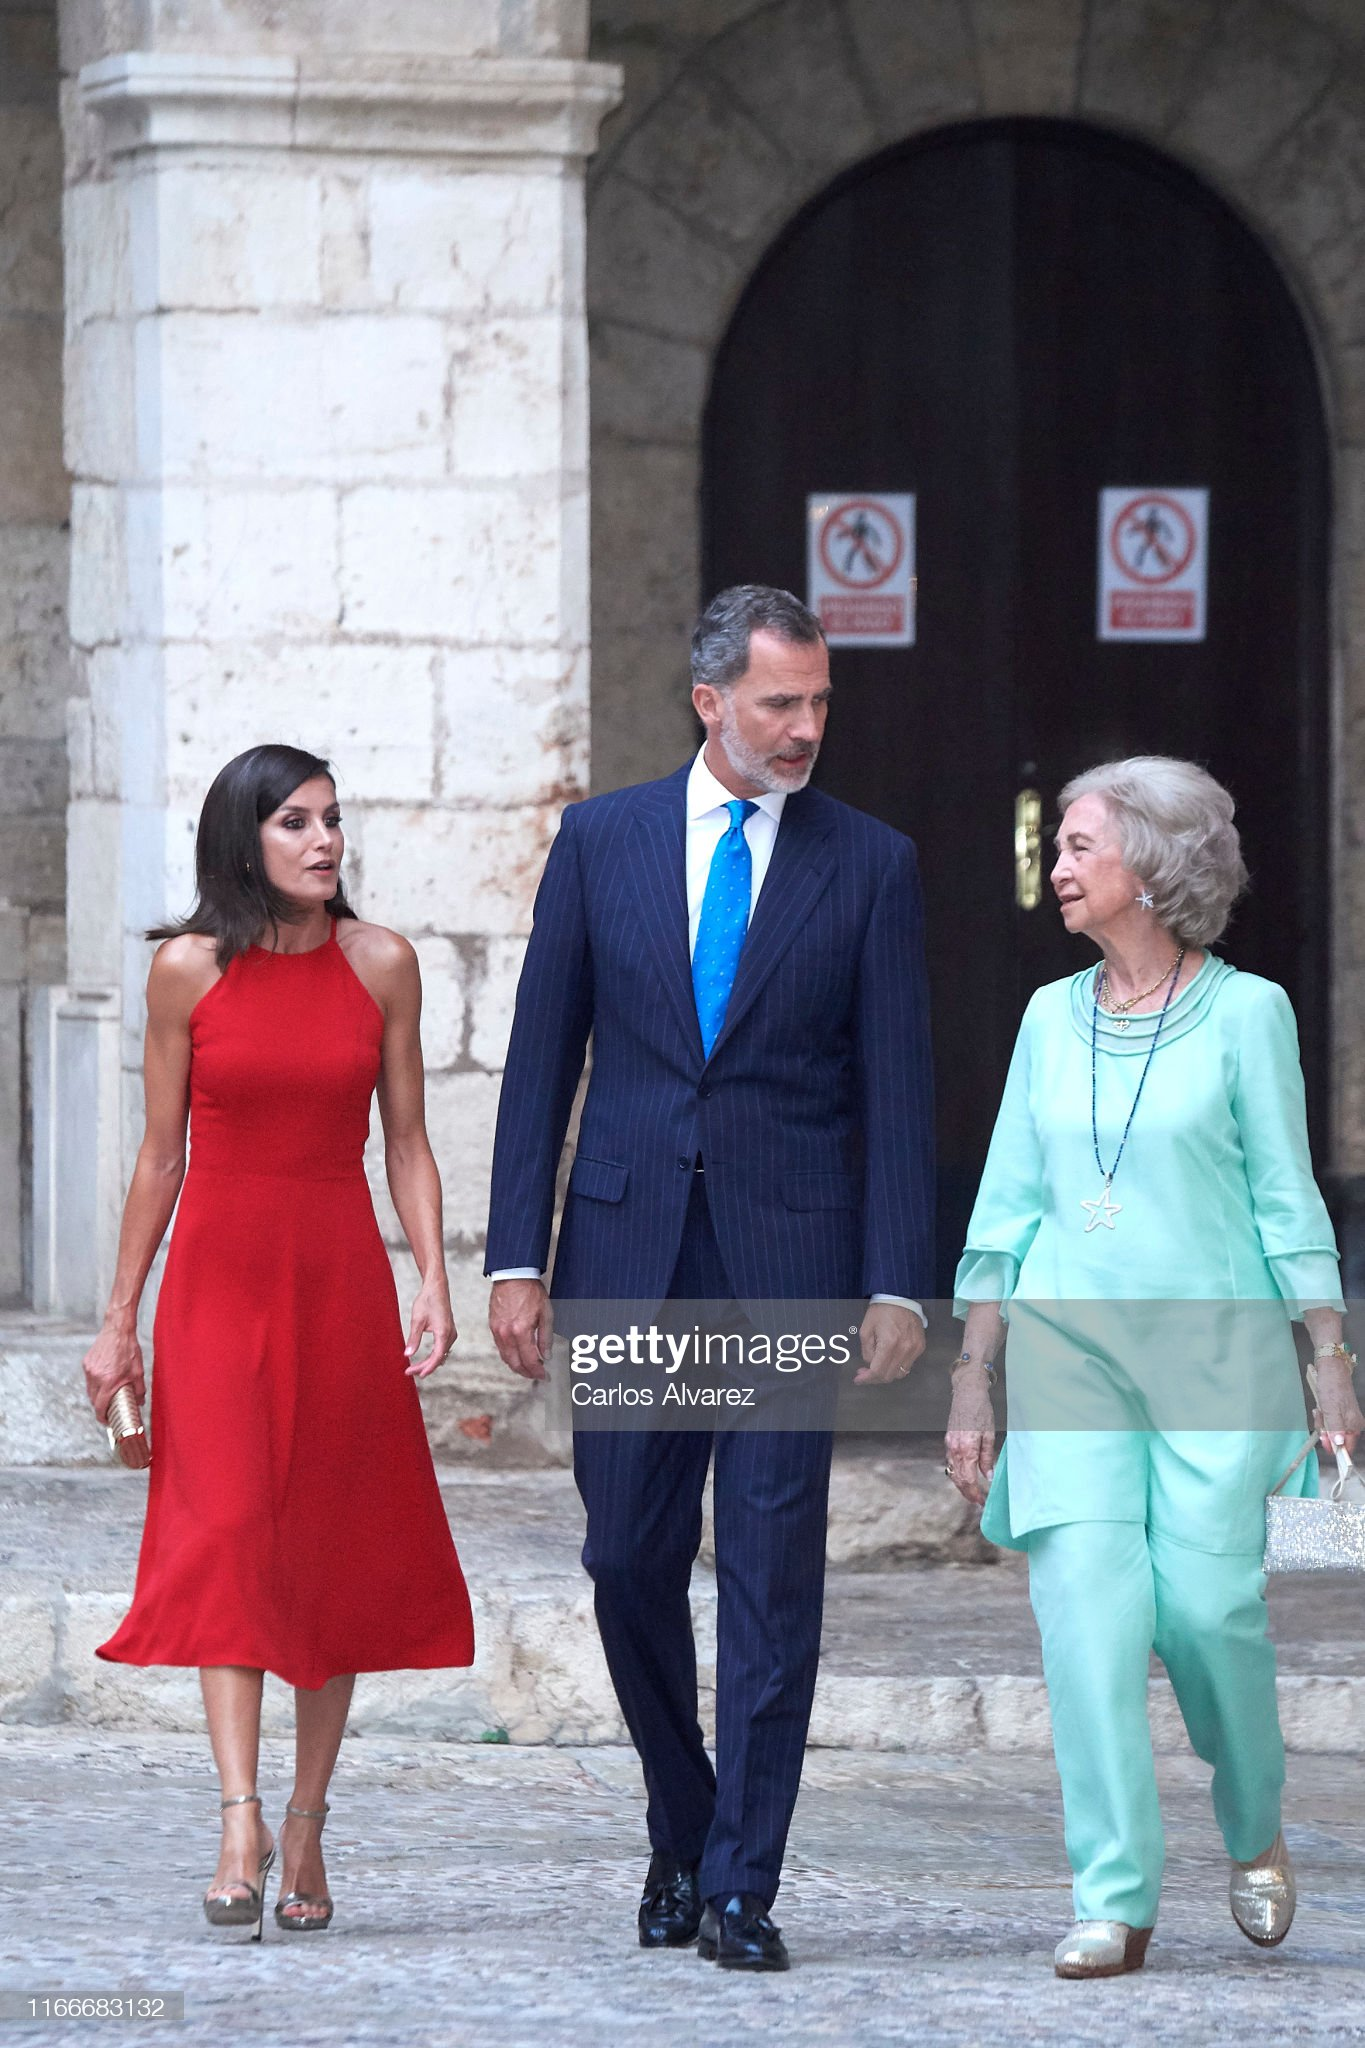 https://media.gettyimages.com/photos/king-felipe-vi-of-spain-queen-letizia-of-spain-and-queen-sofia-host-a-picture-id1166683132?s=2048x2048